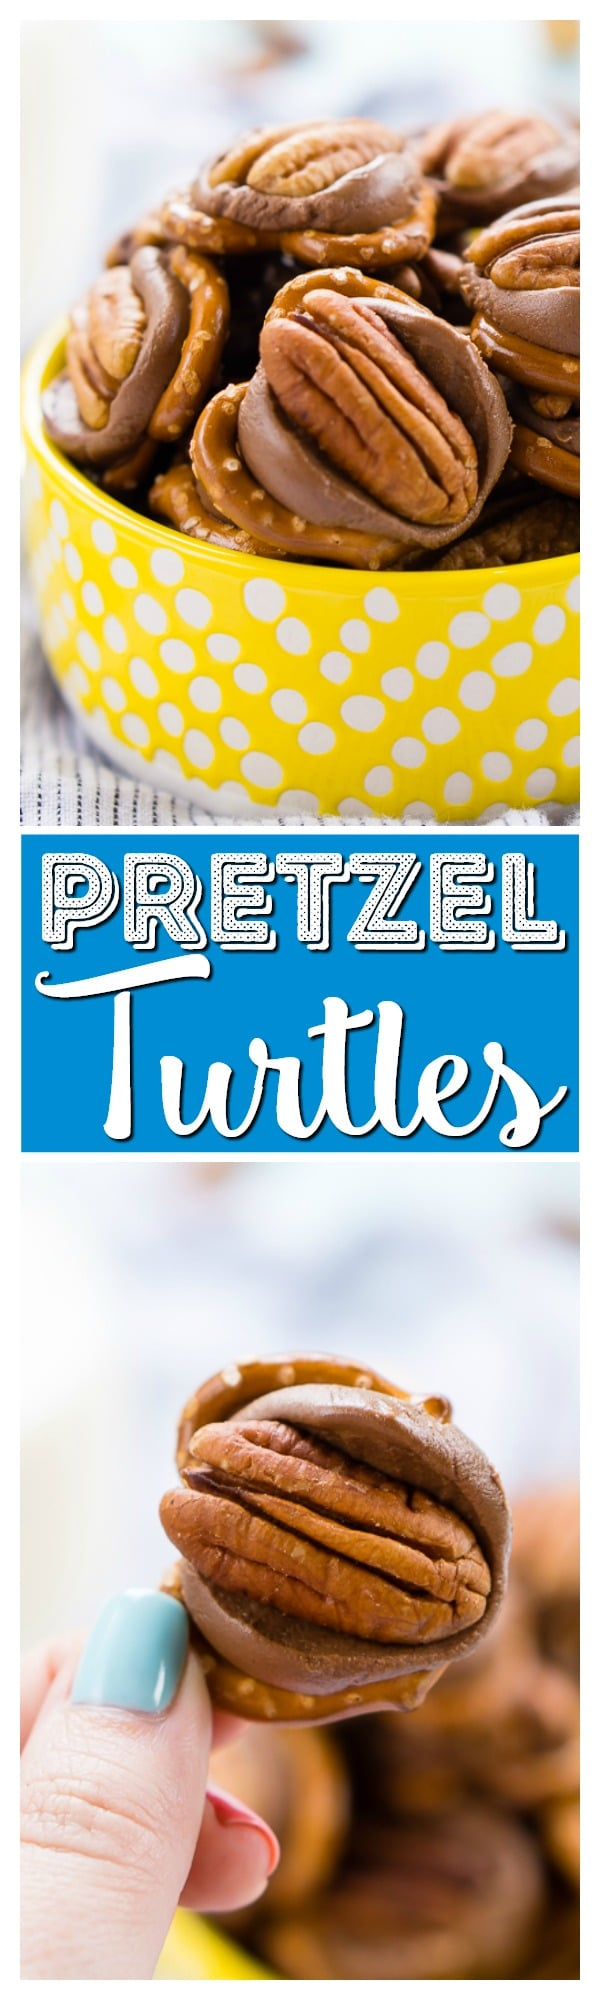 Pretzel Turtles are made with just three ingredients and everyone will love the mix of salty and sweet in this delicious little dessert candy! via @sugarandsoulco